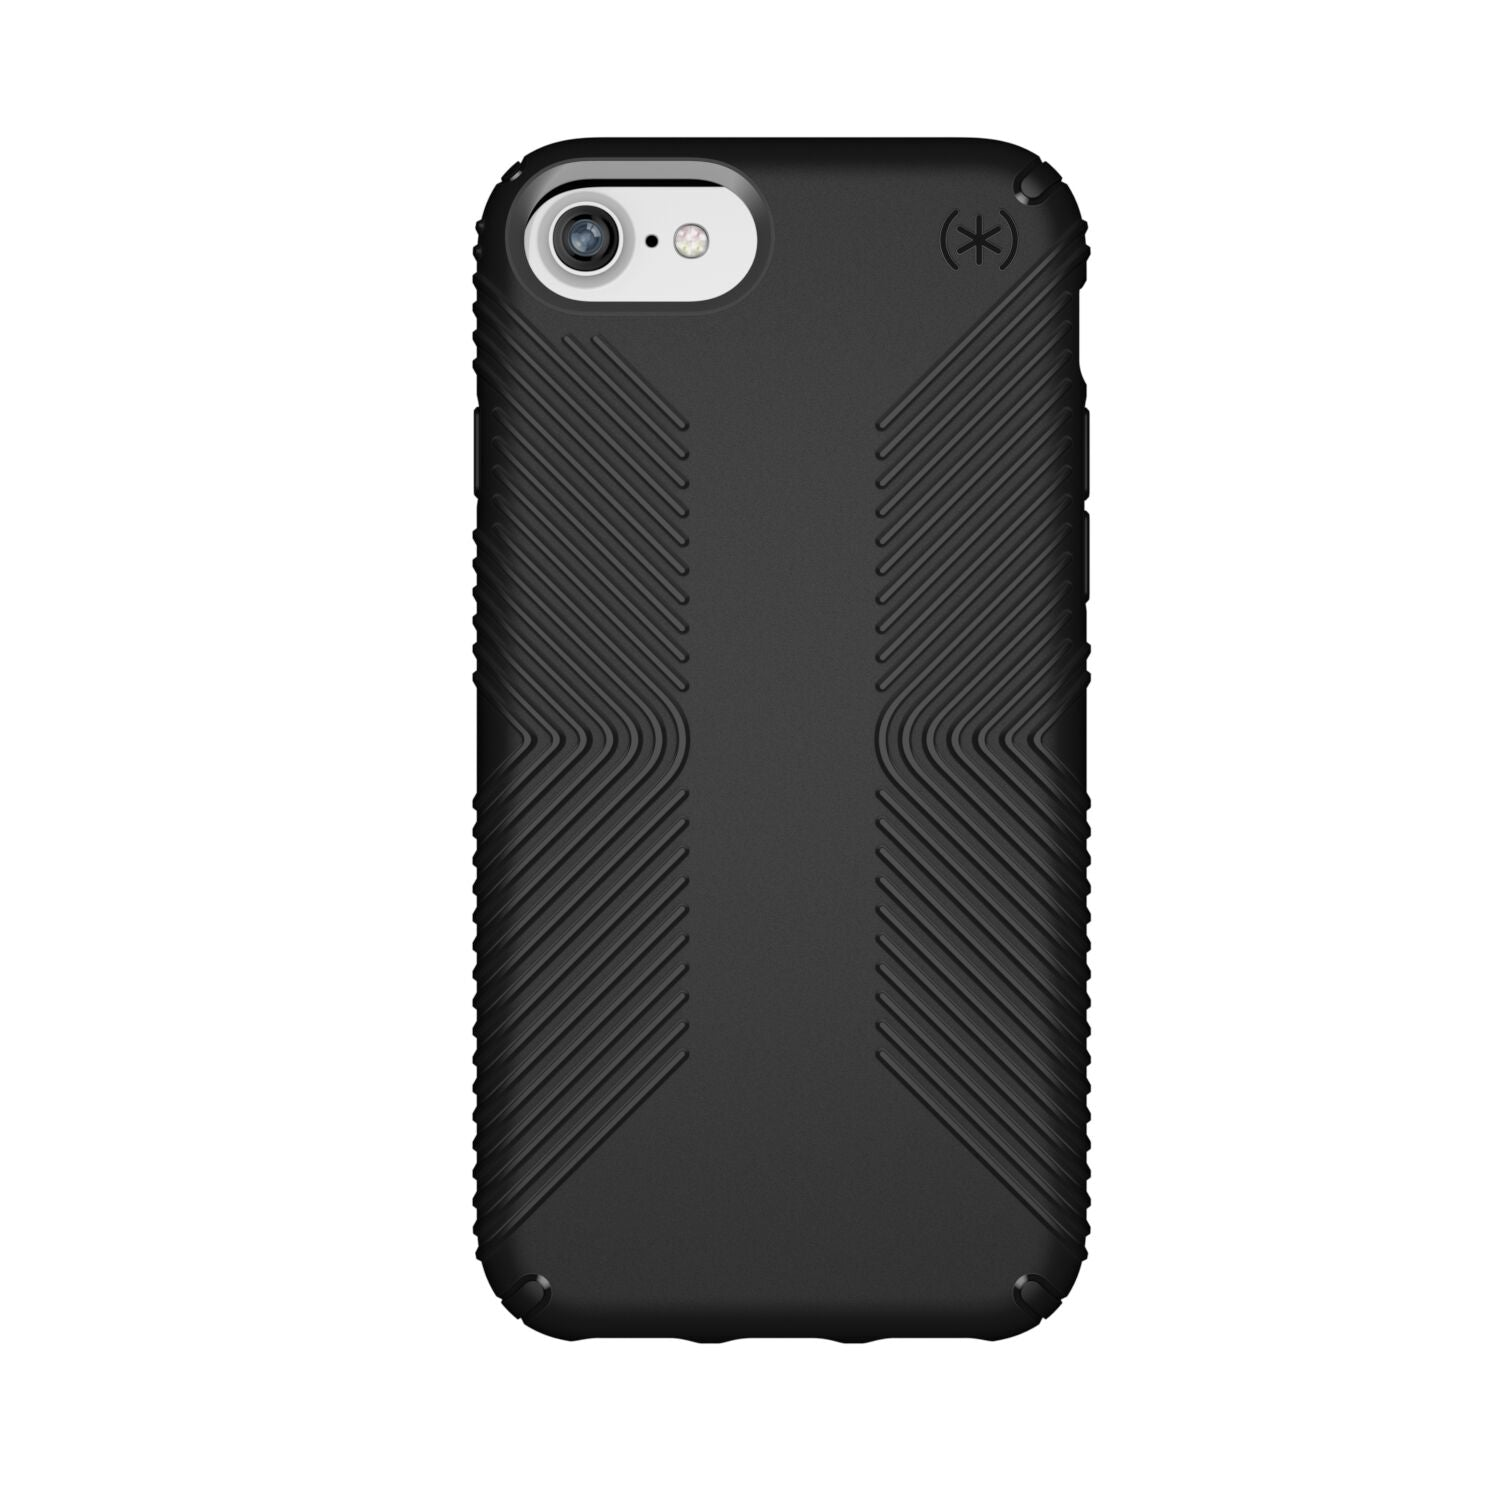 iphone 7/8/SE(2020) Speck Presidio Grip Case